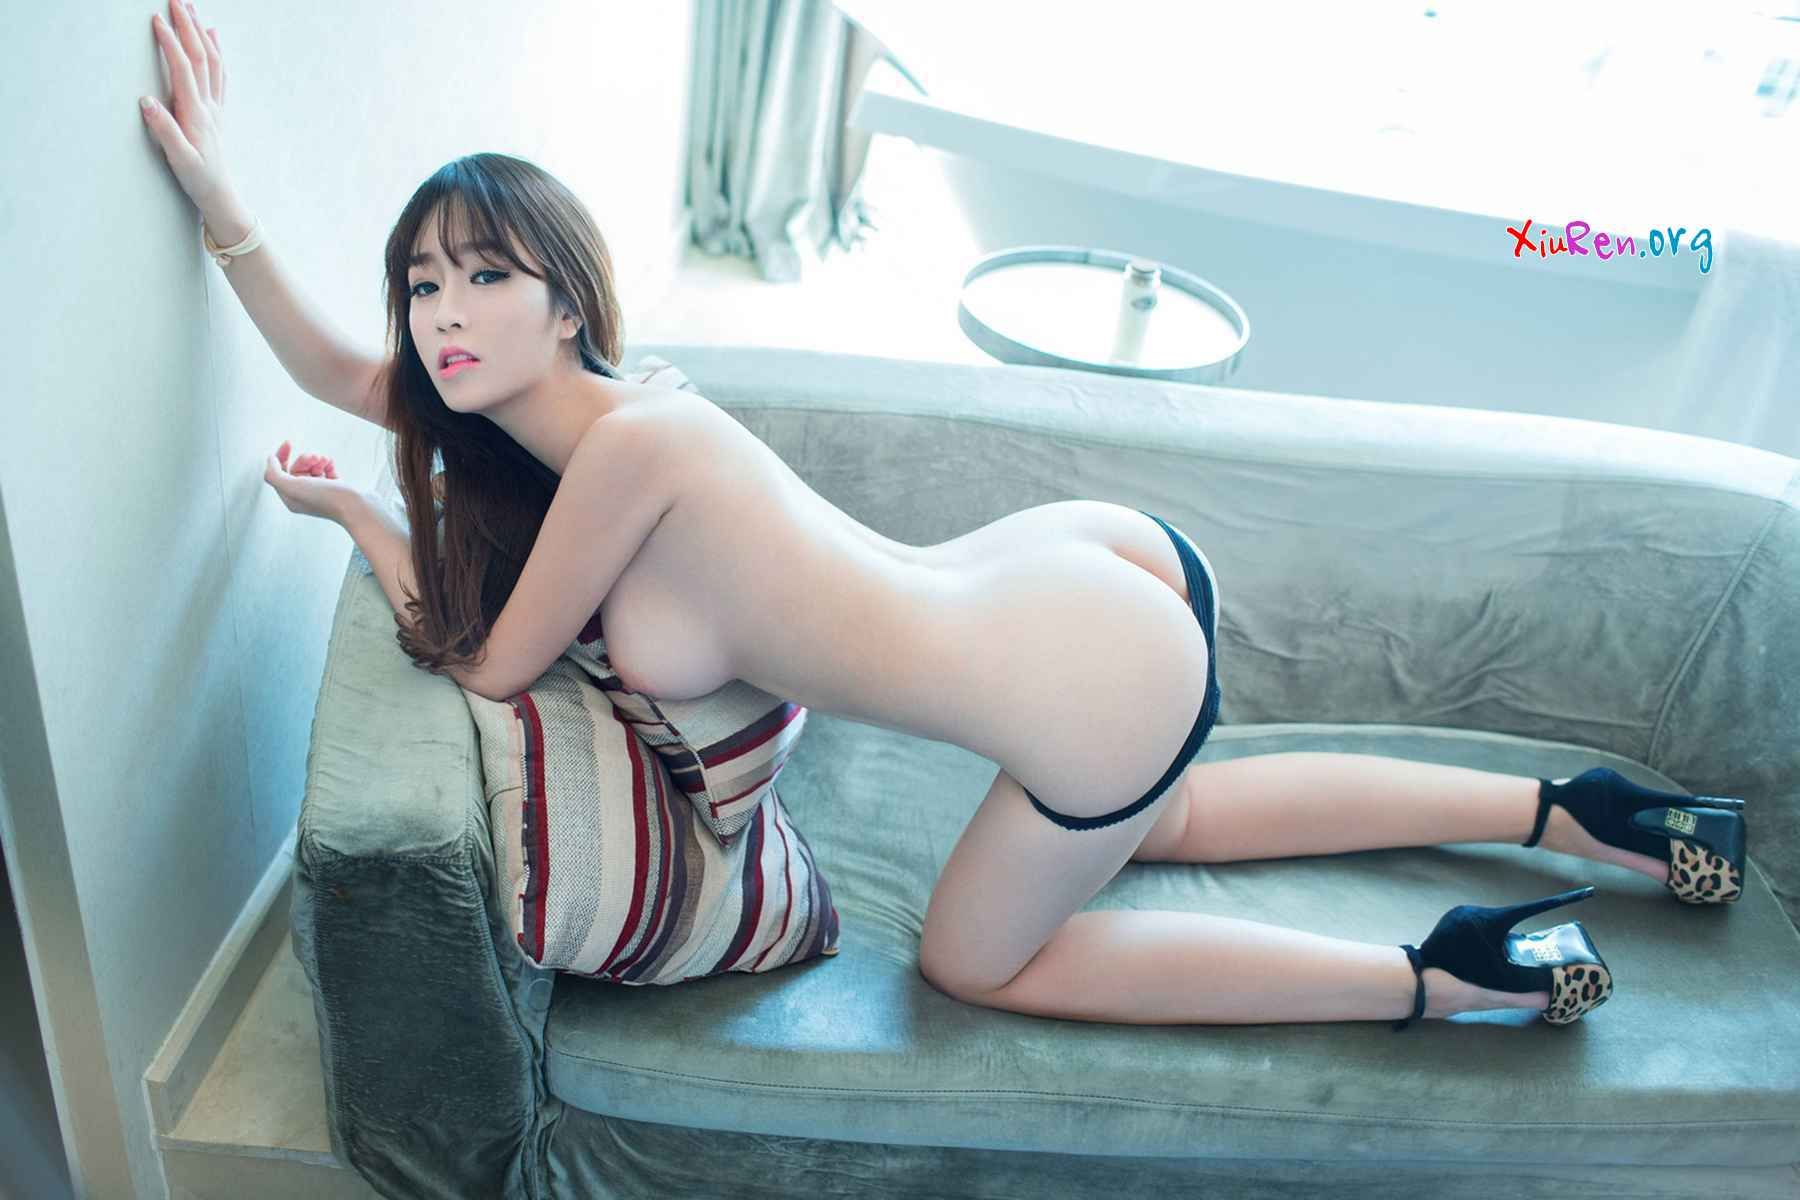 Confirm. Shy amature nude chinese girl